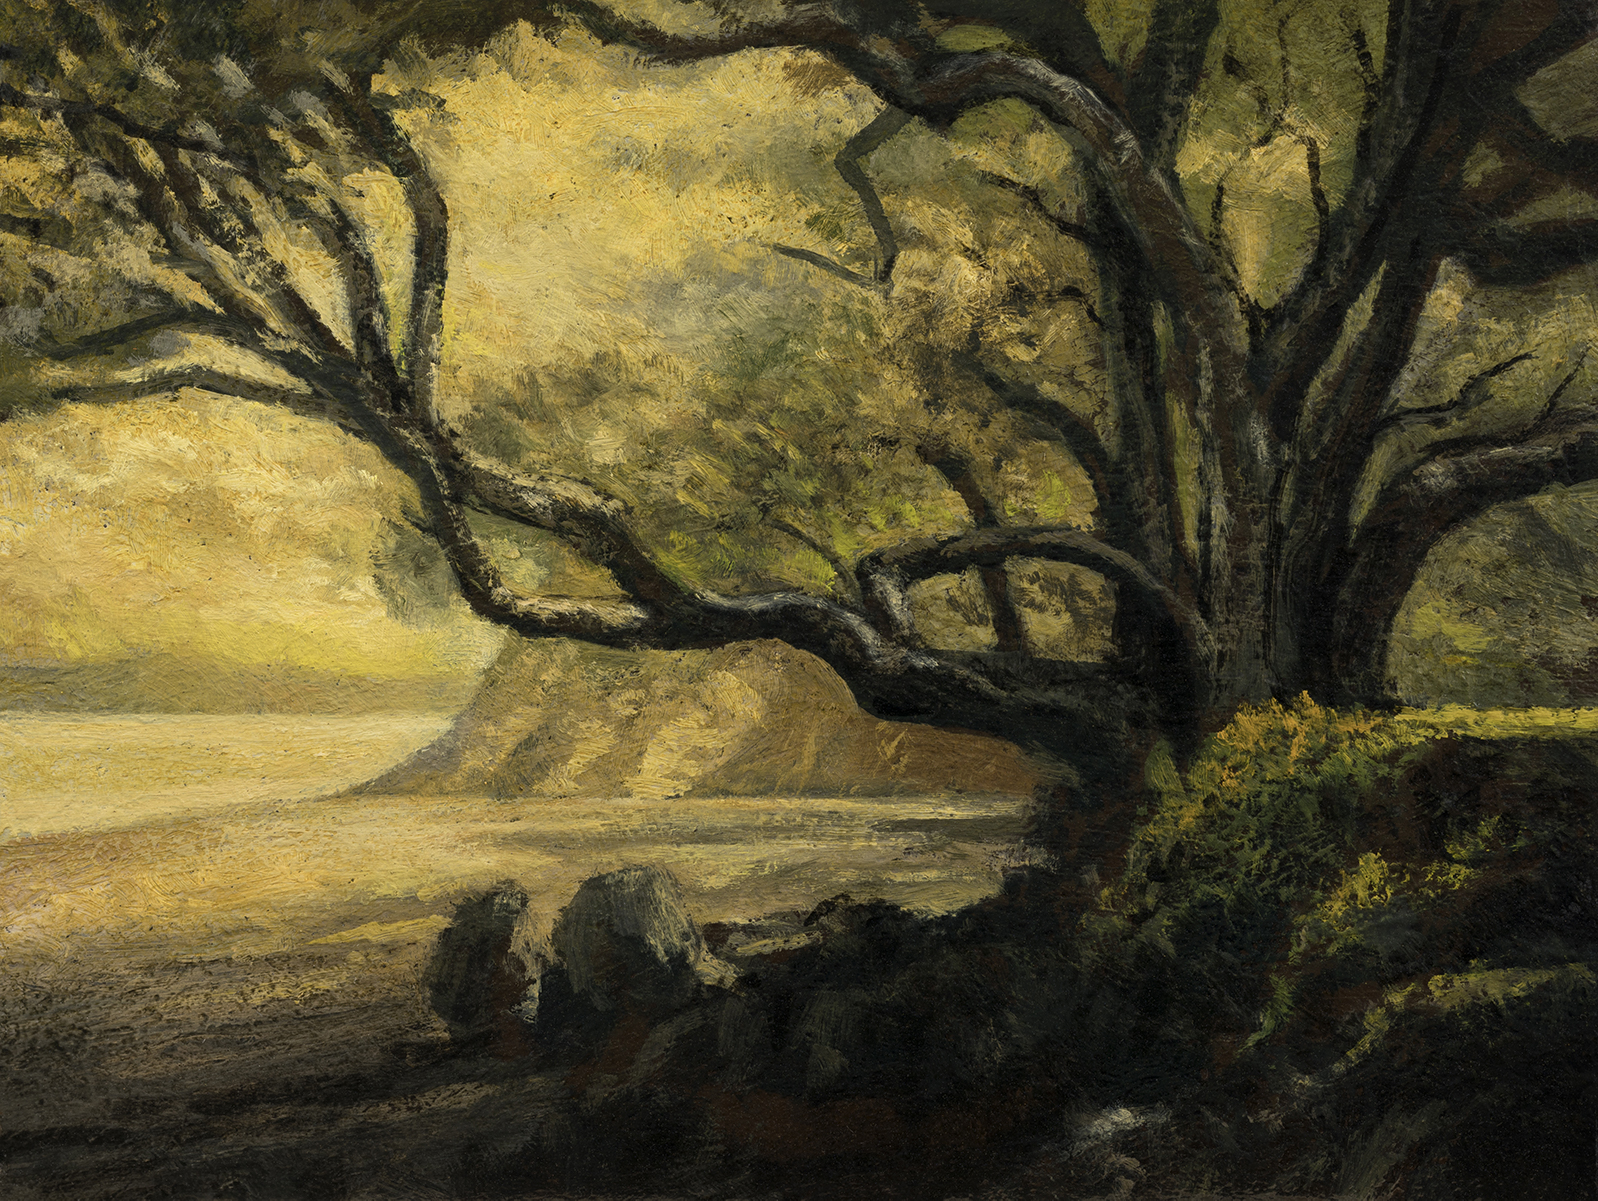 In the Shade  by M Francis McCarthy - 6x8 Oil on Wood Panel